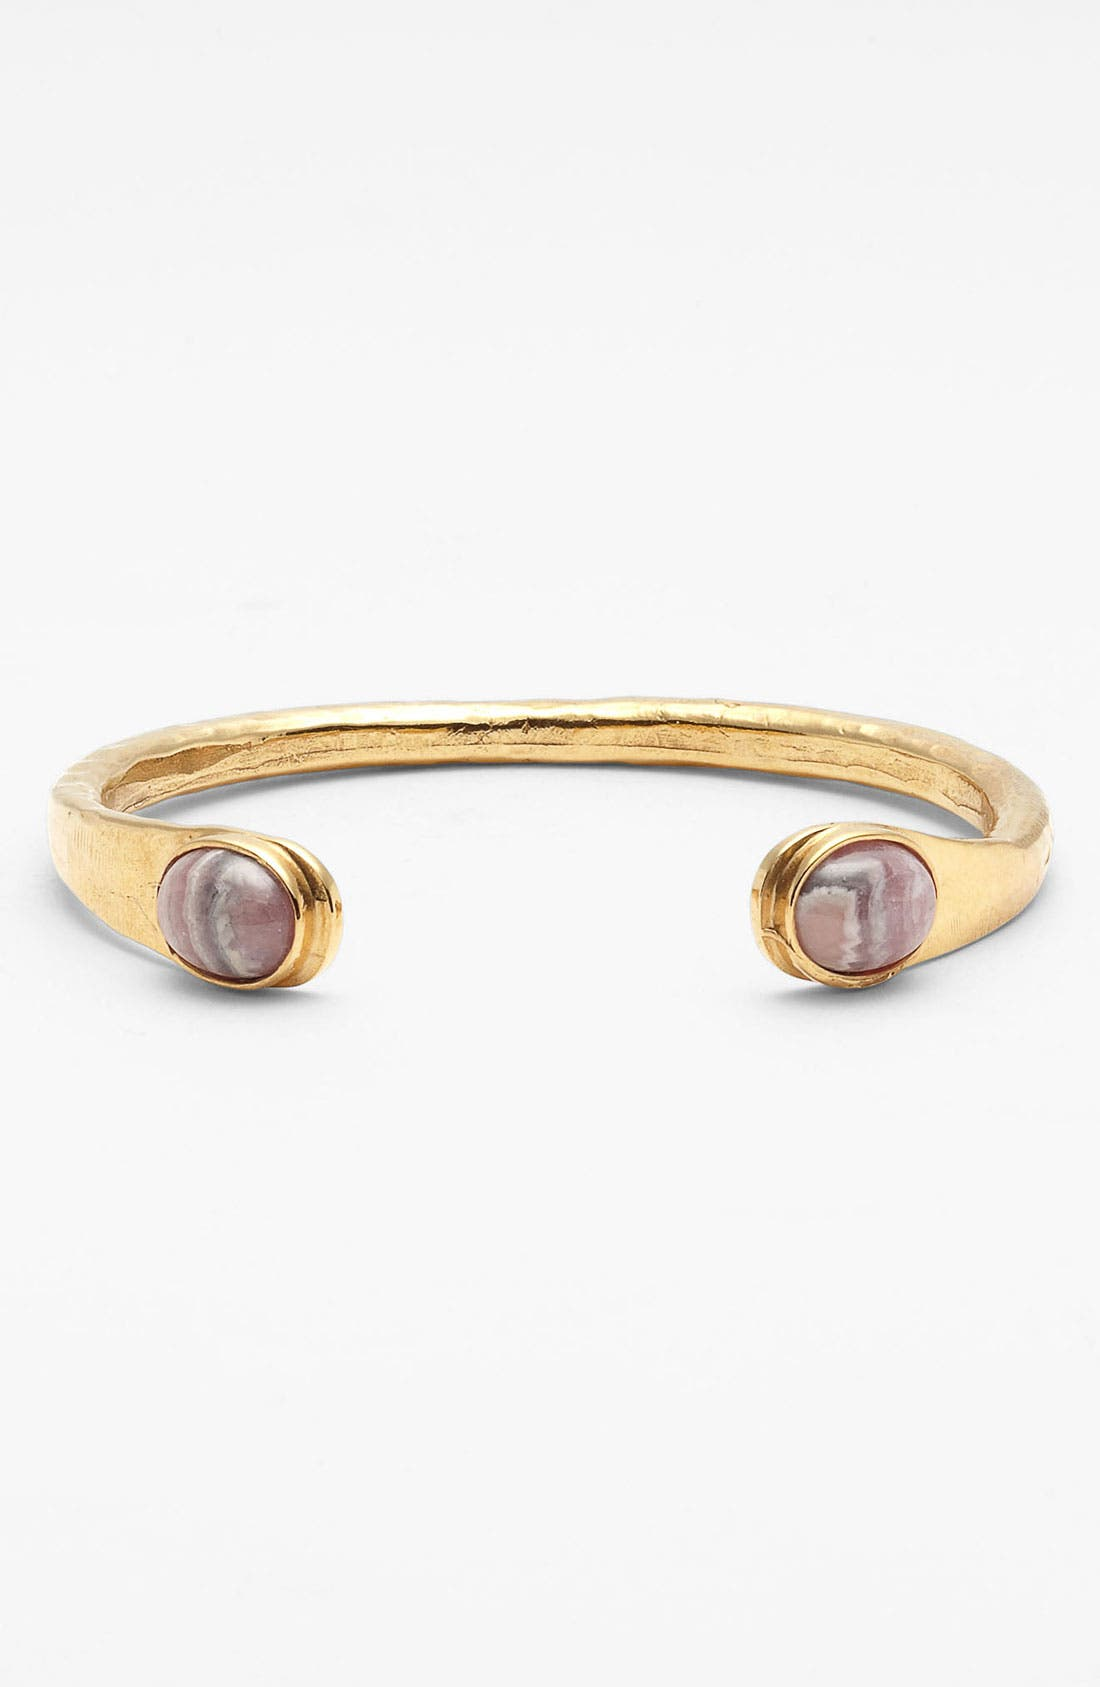 Main Image - Kelly Wearstler Oval Stone Cuff